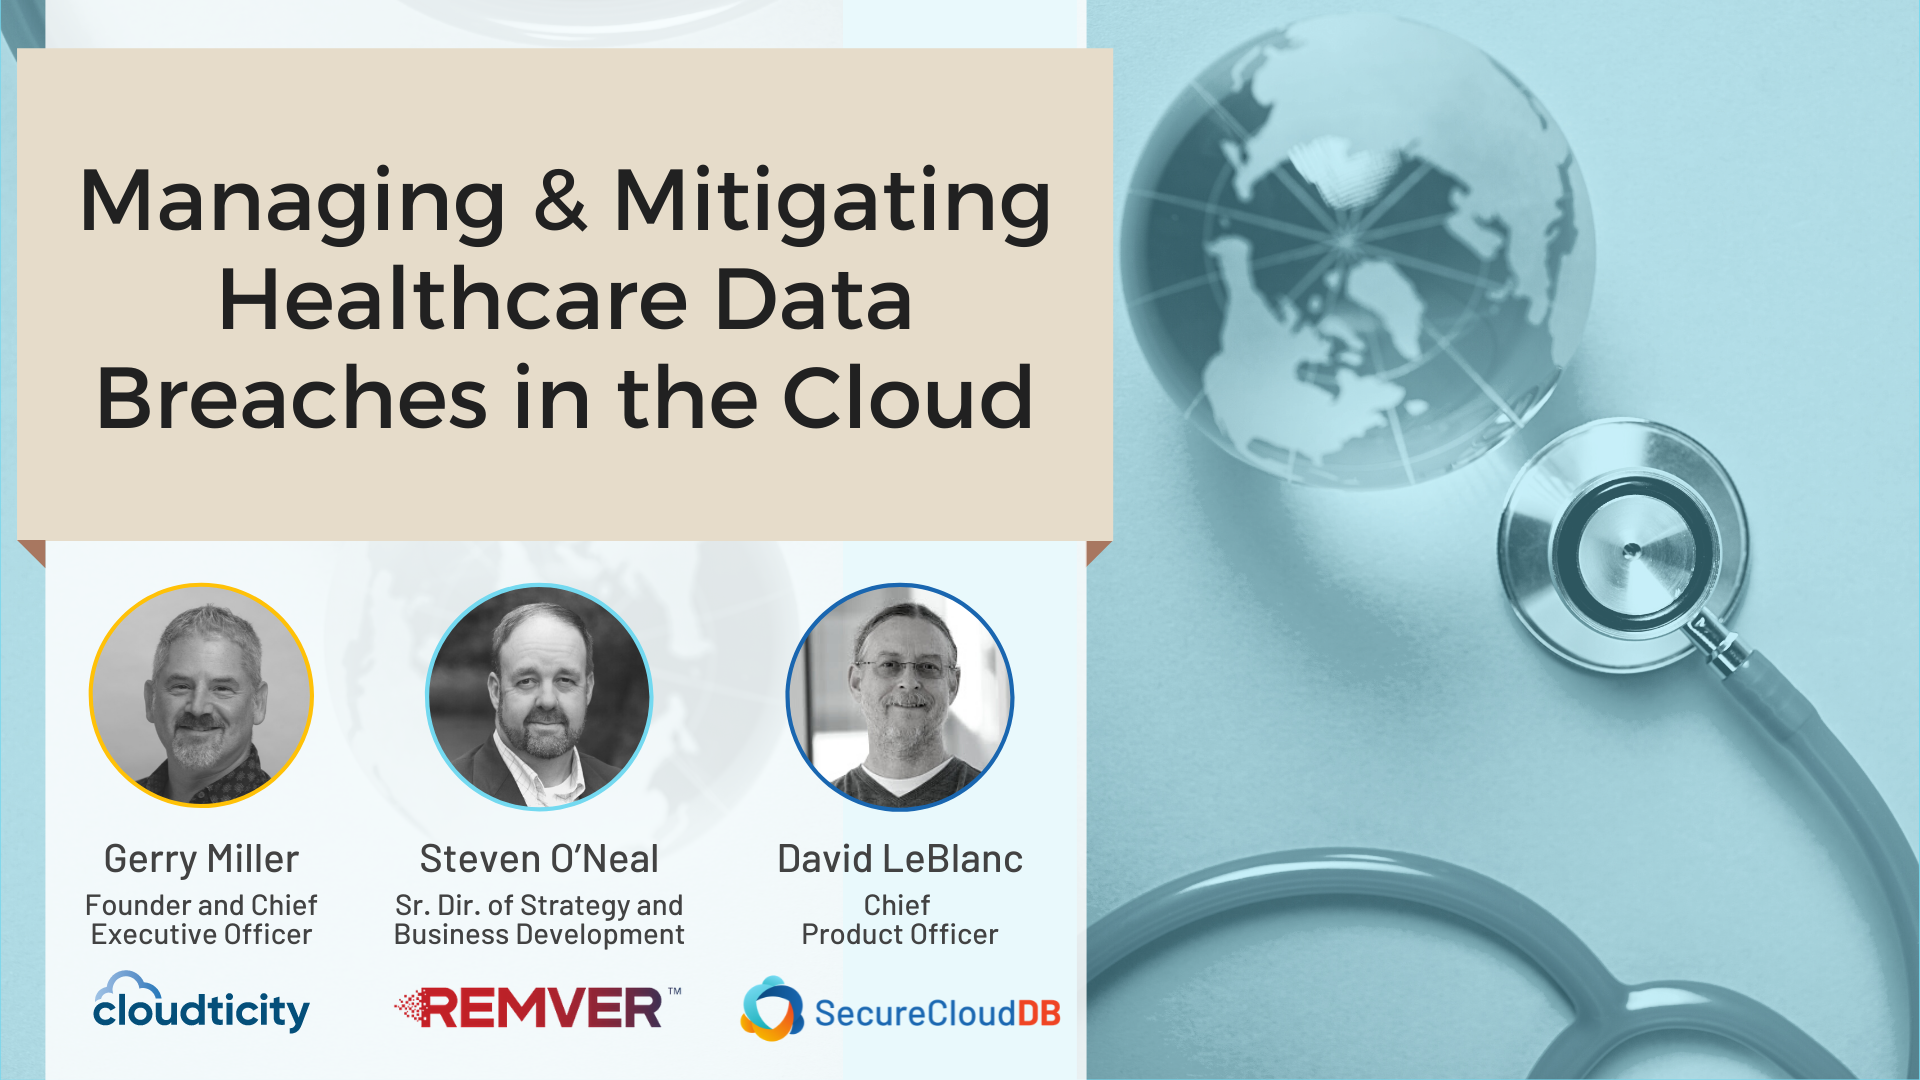 [Panel] Managing & Mitigating Healthcare Data Breaches in the Cloud